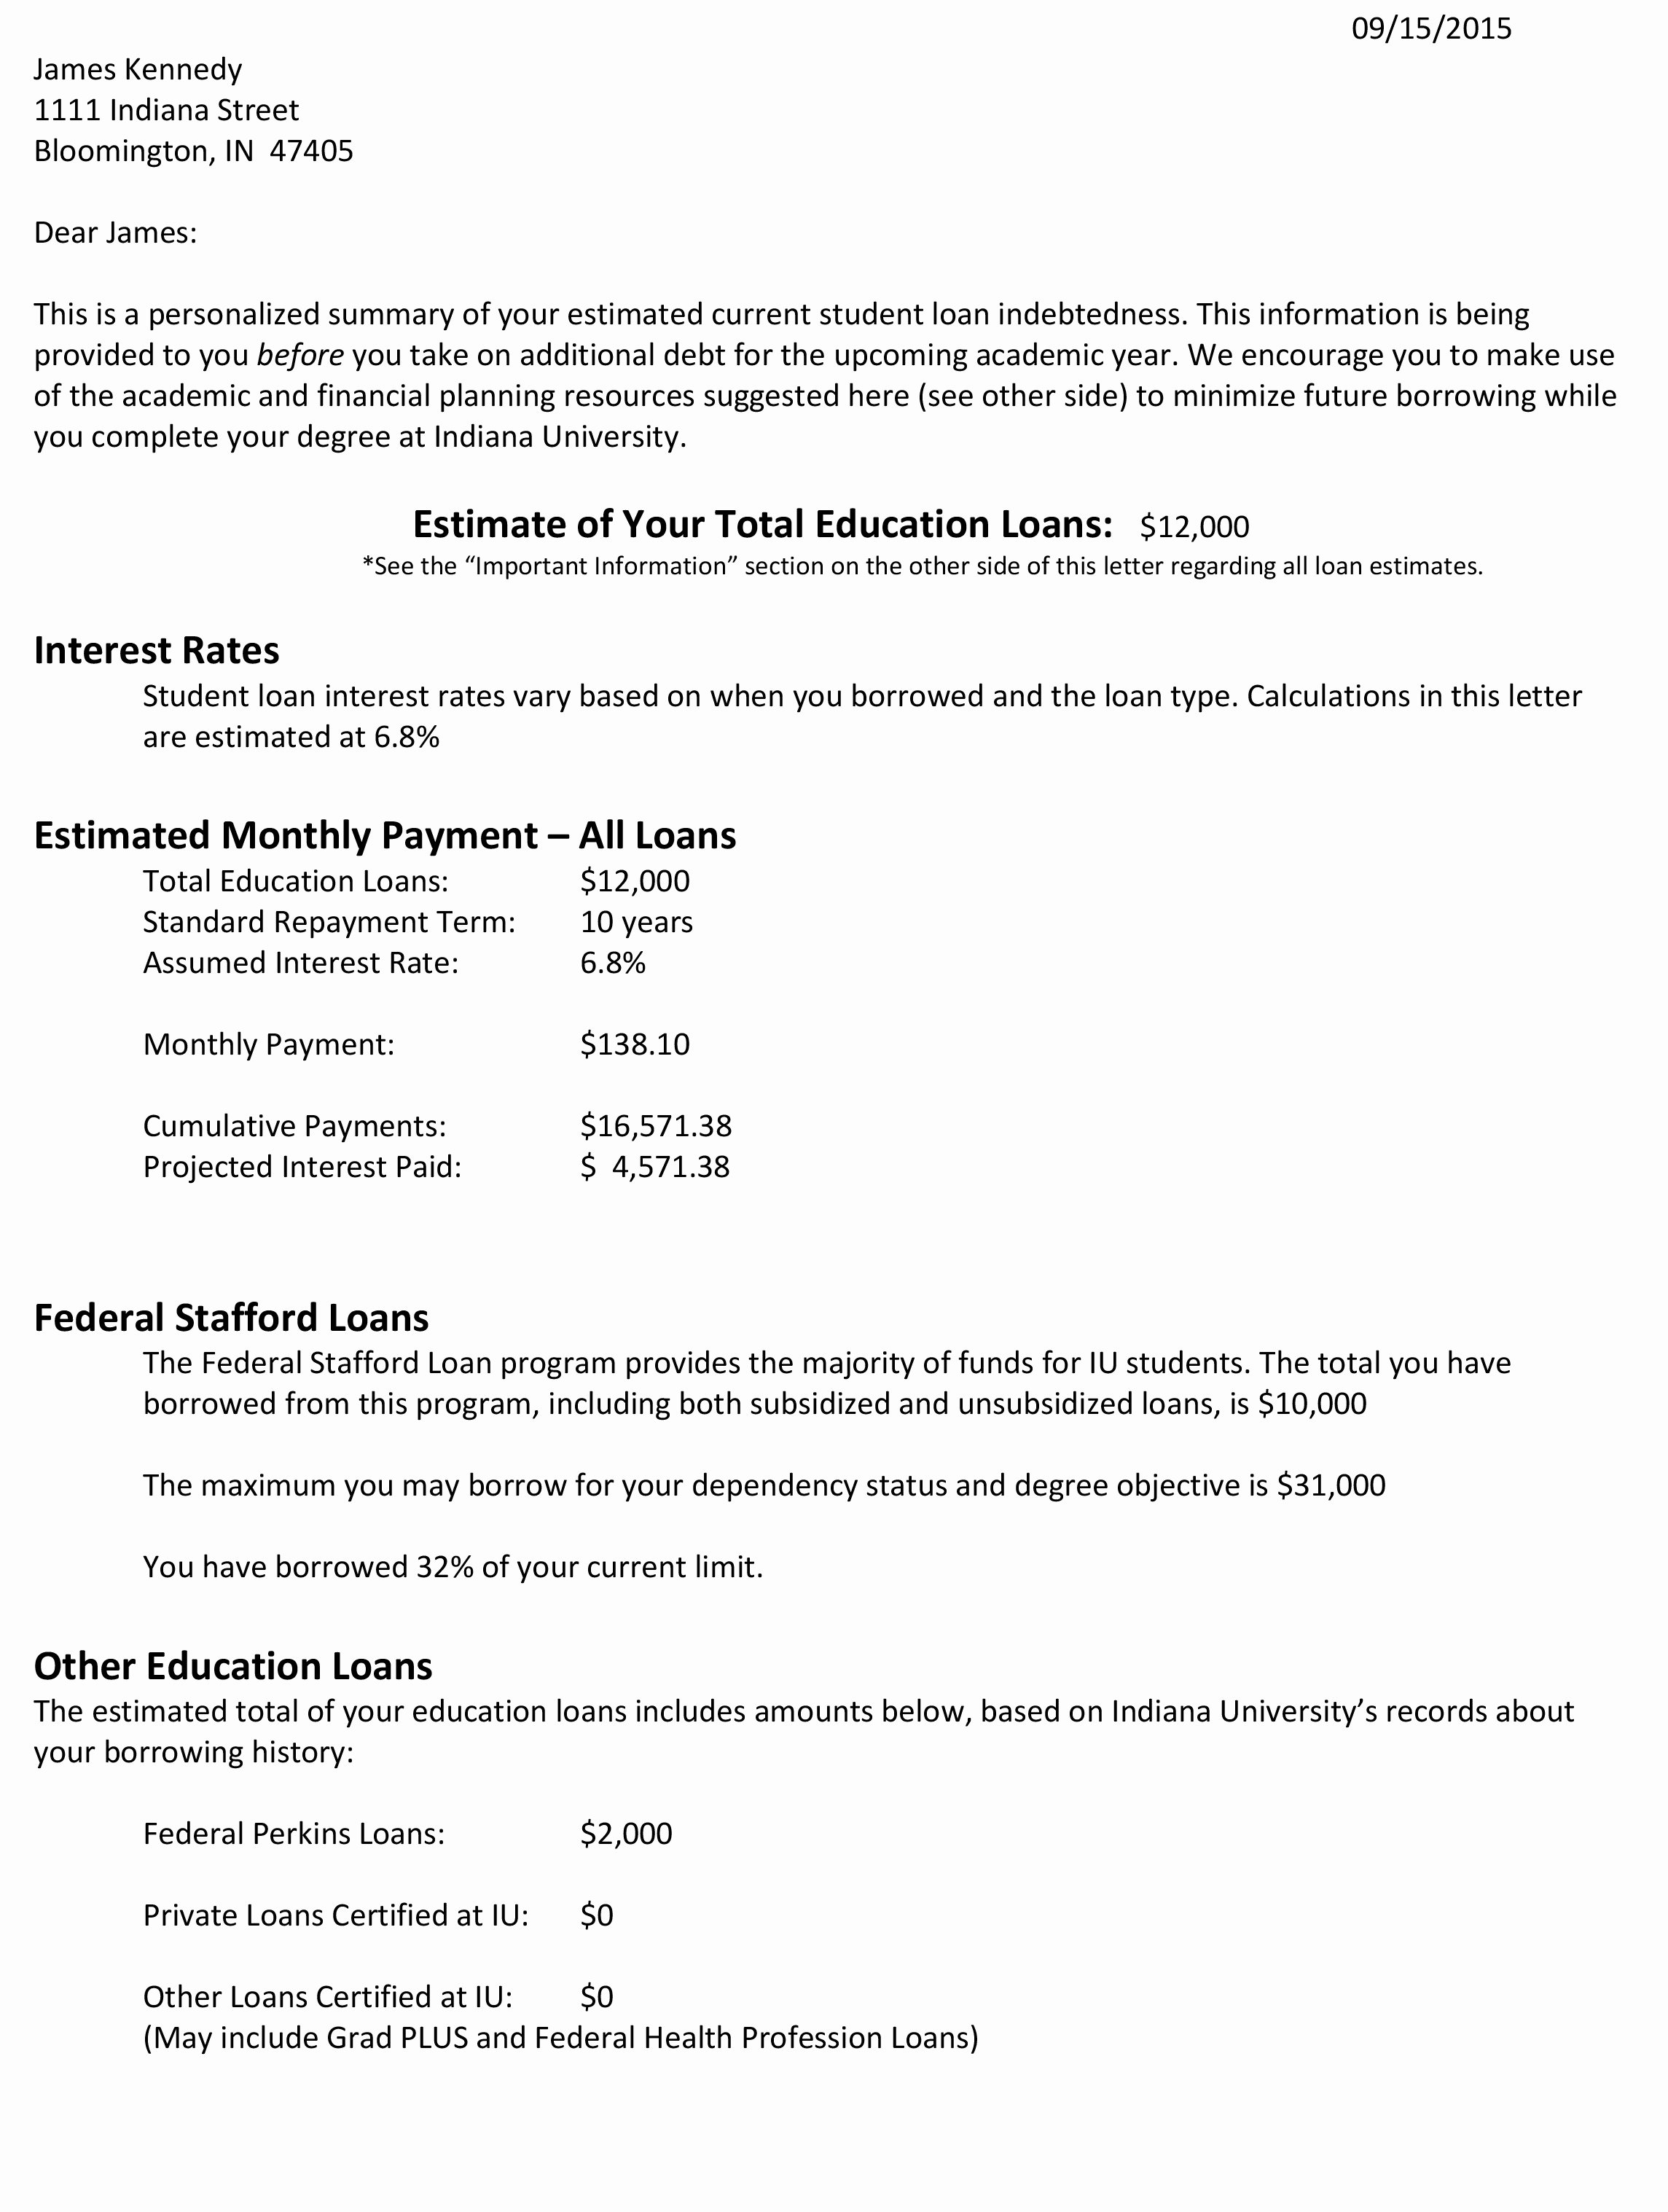 Private Mortgage Payoff Letter Template Awesome the Letter that S Helping E College S Students